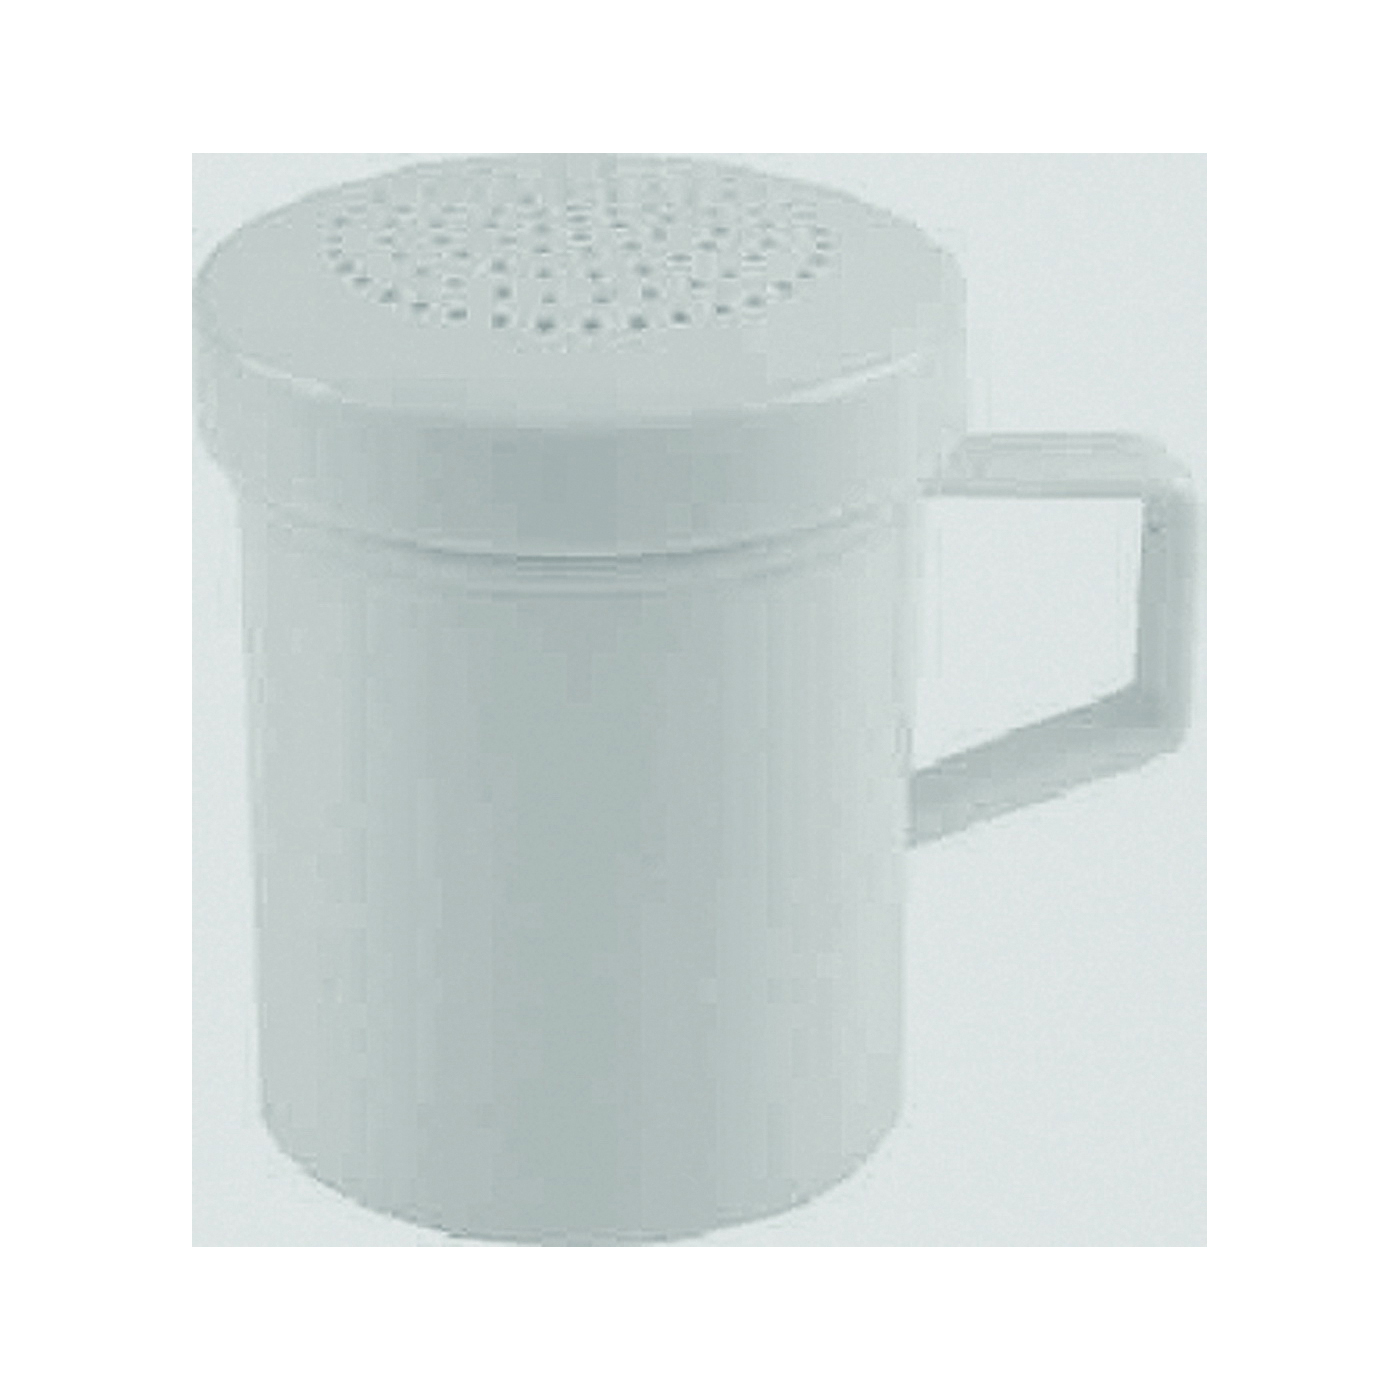 Picture of Fox Run 4647 Sifter Shaker, White